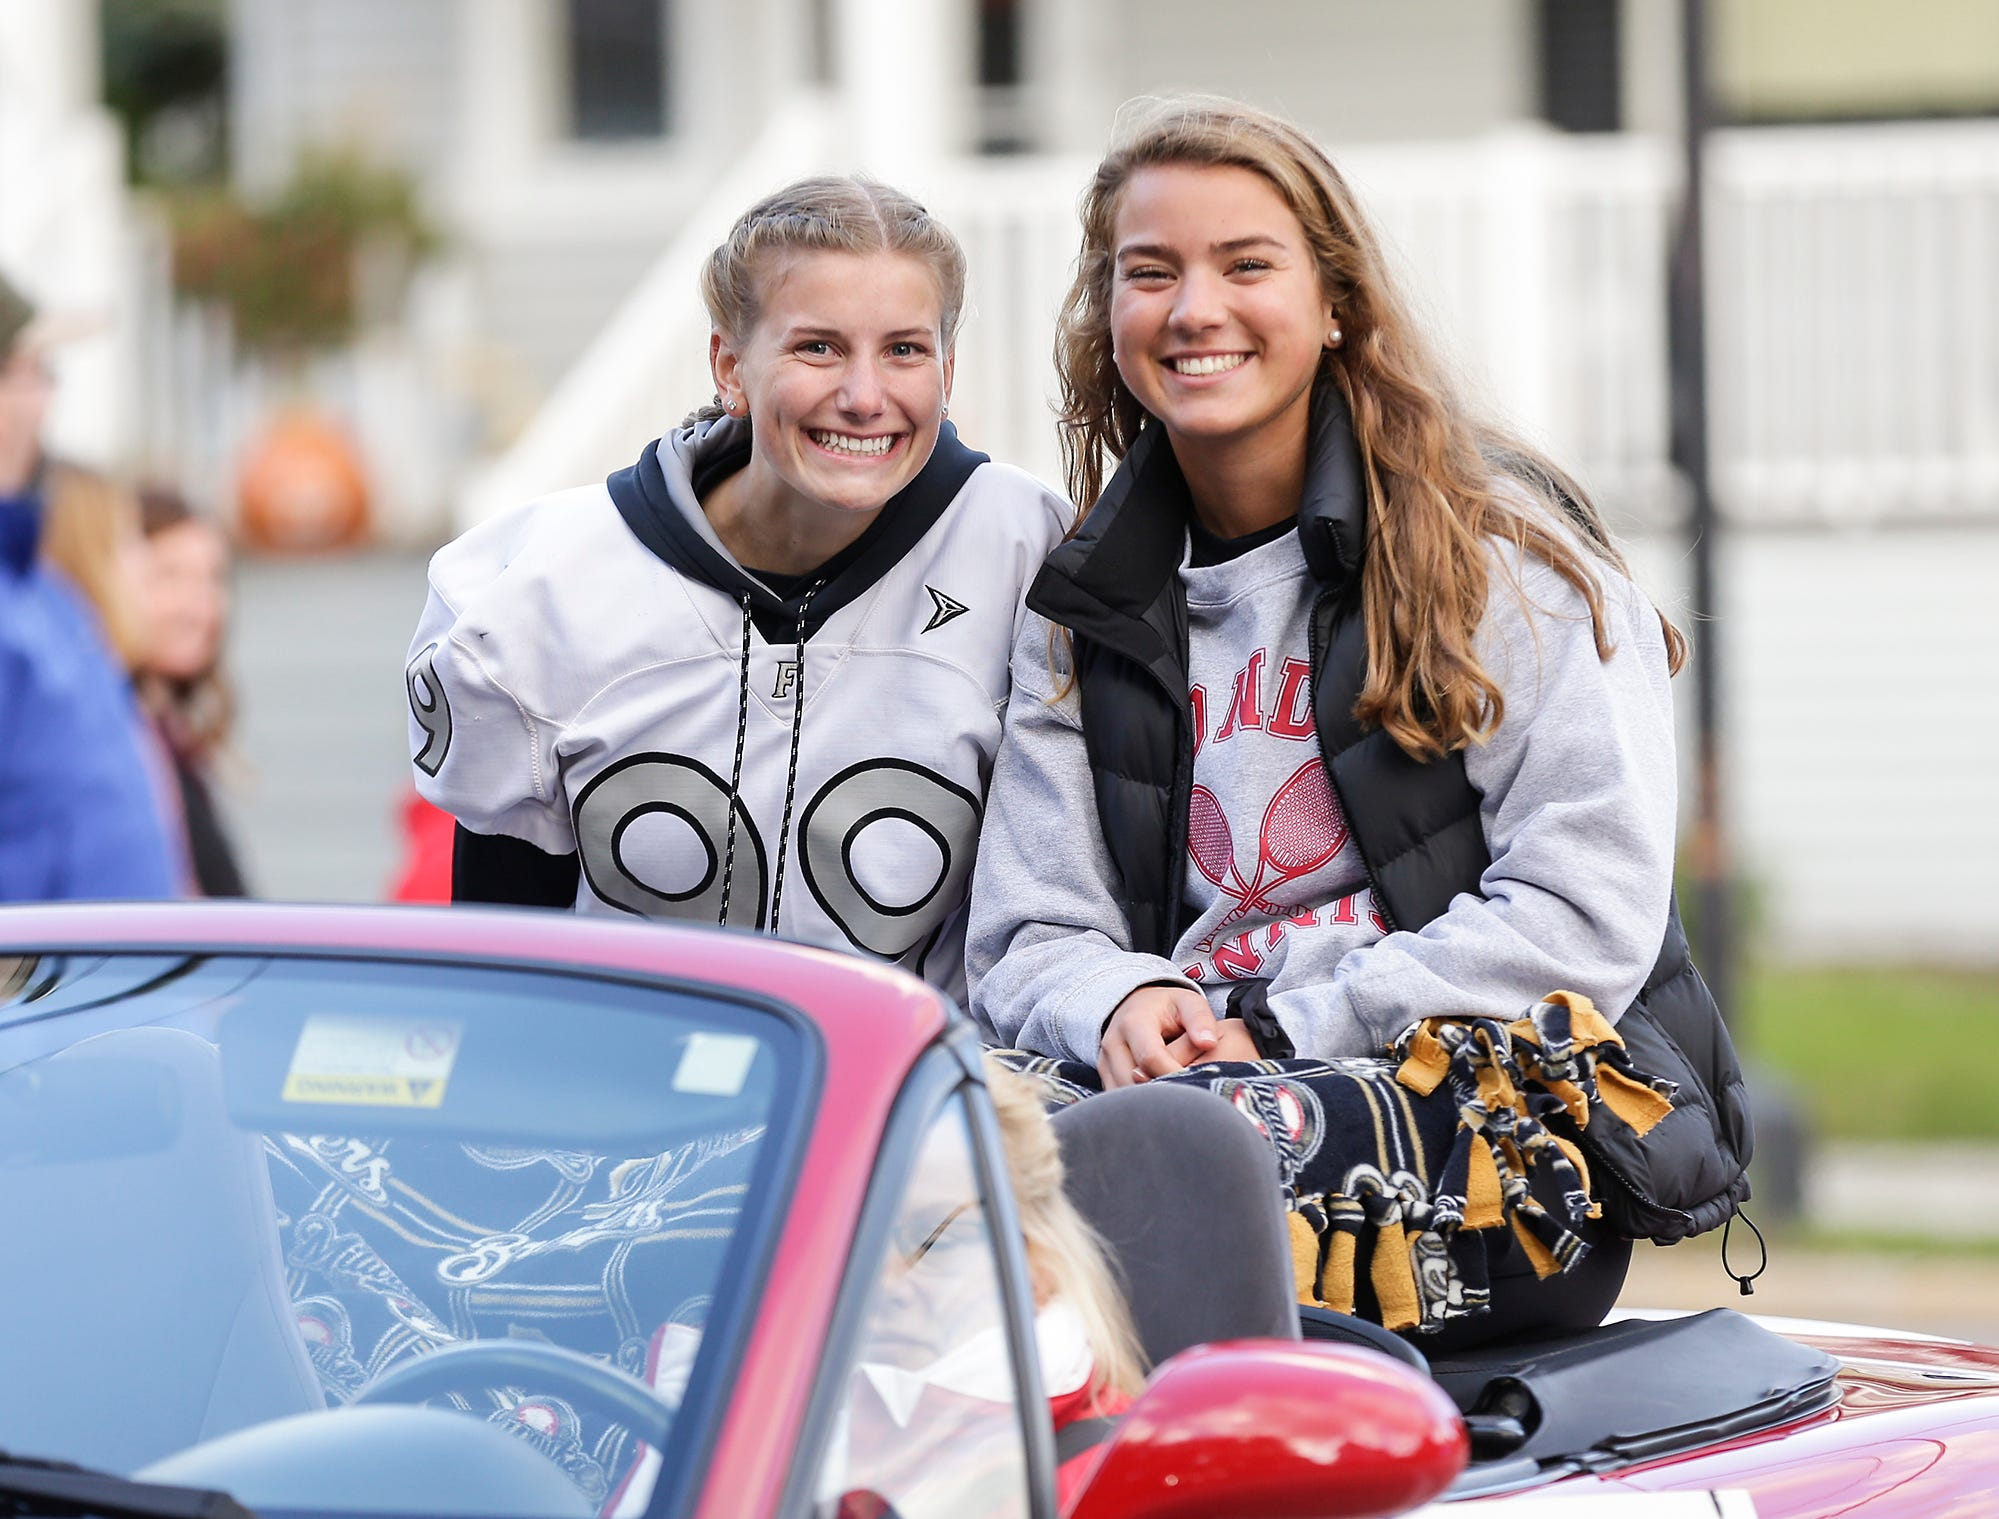 Fond du Lac High School seniors Emma Kottke and Anna Mauthe ride in the Fond du Lac High School football homecoming parade Friday, Sept. 28, 2018, which went down portions of Martin Avenue and Ninth Street in Fond du Lac, Wisconsin.